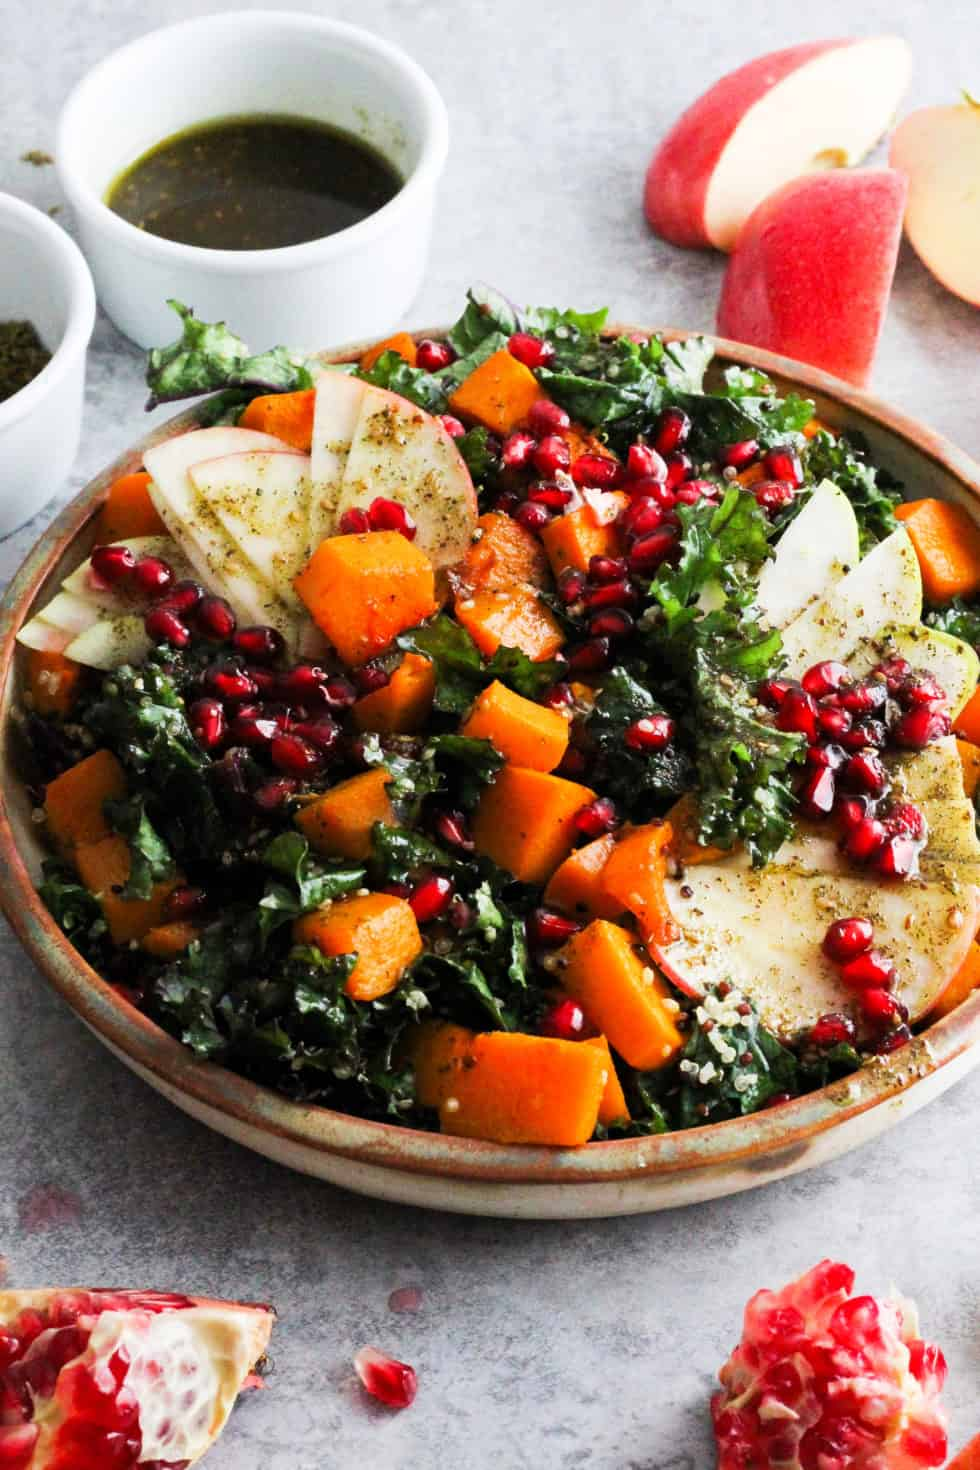 Harvest Zaatar Kale Salad in stone dish with ramekin of dressing and fruit around plate.